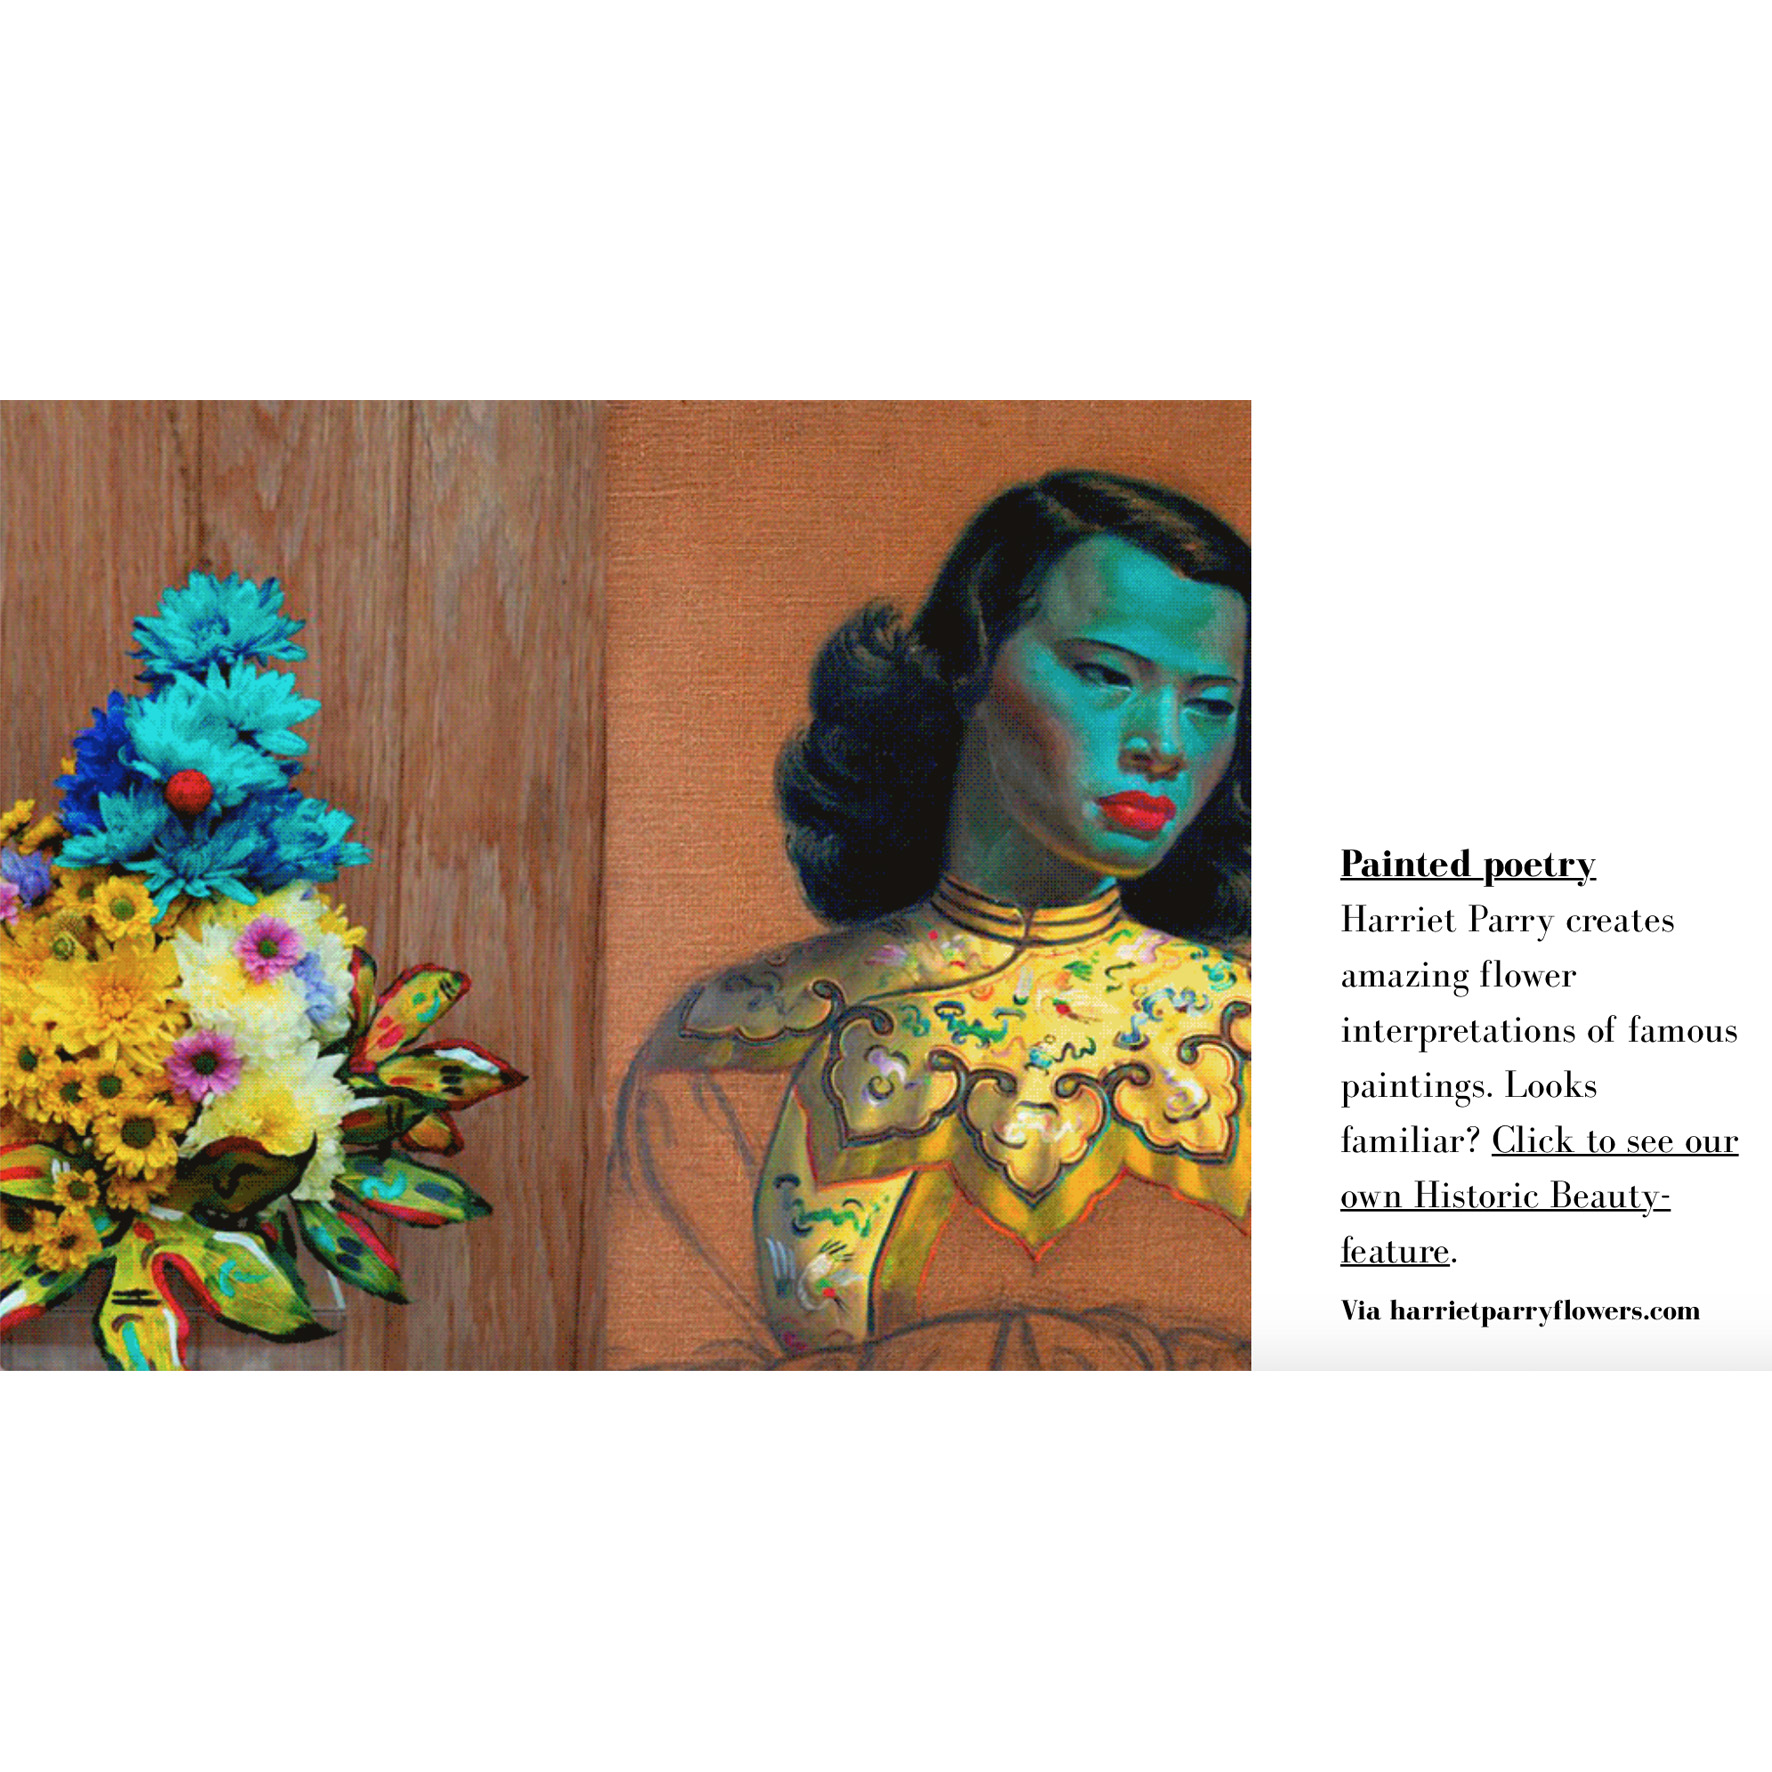 green gallery issue 14-harriet parry feature.jpg